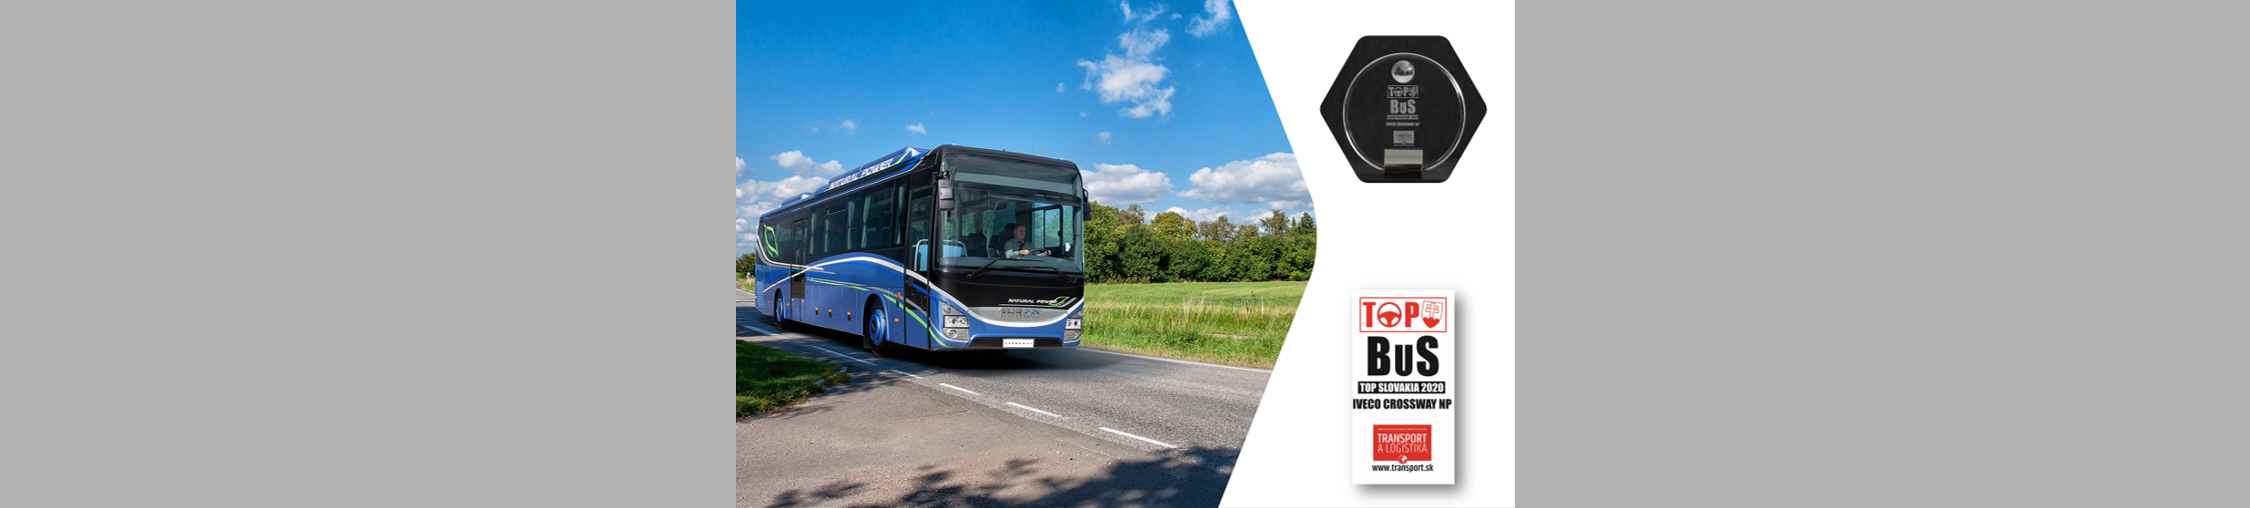 IVECO BUS remporte les prix de « TOP SLOVAKIA 2020 » et « TOP CZECH TRANSPORT 2020 » avec son Crossway Natural Power